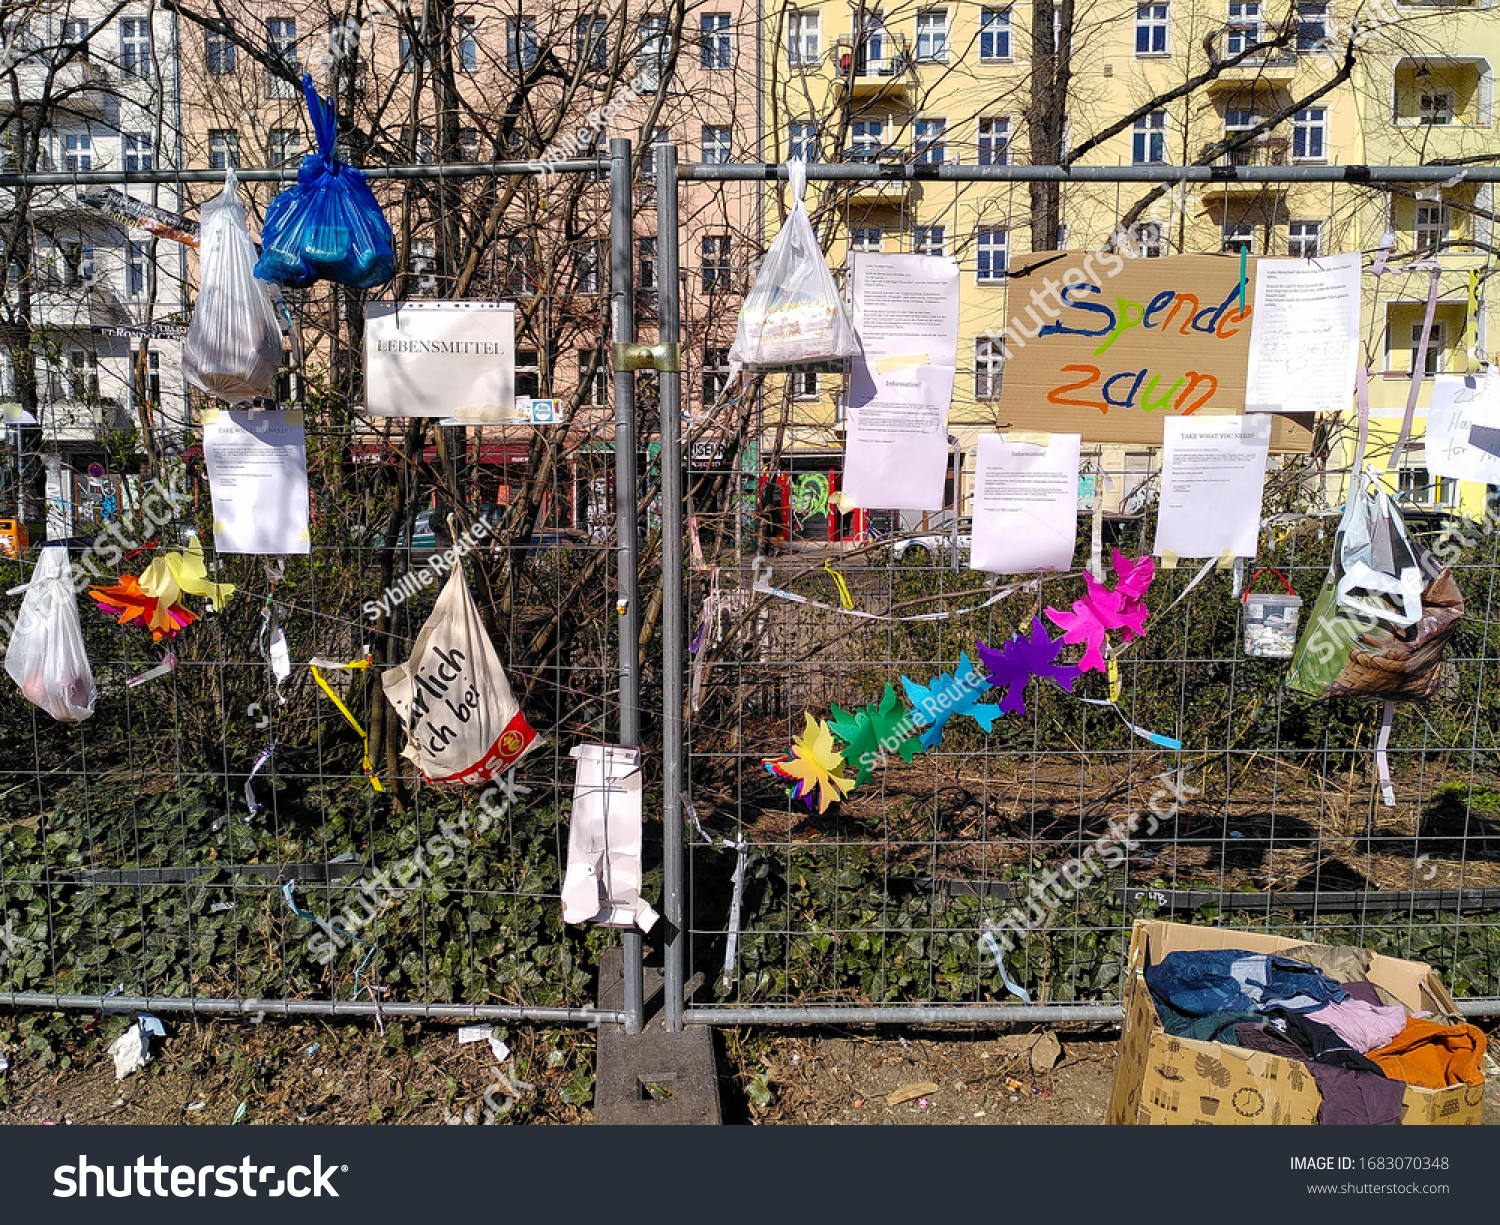 stock-photo-berlin-germany-march-a-fence